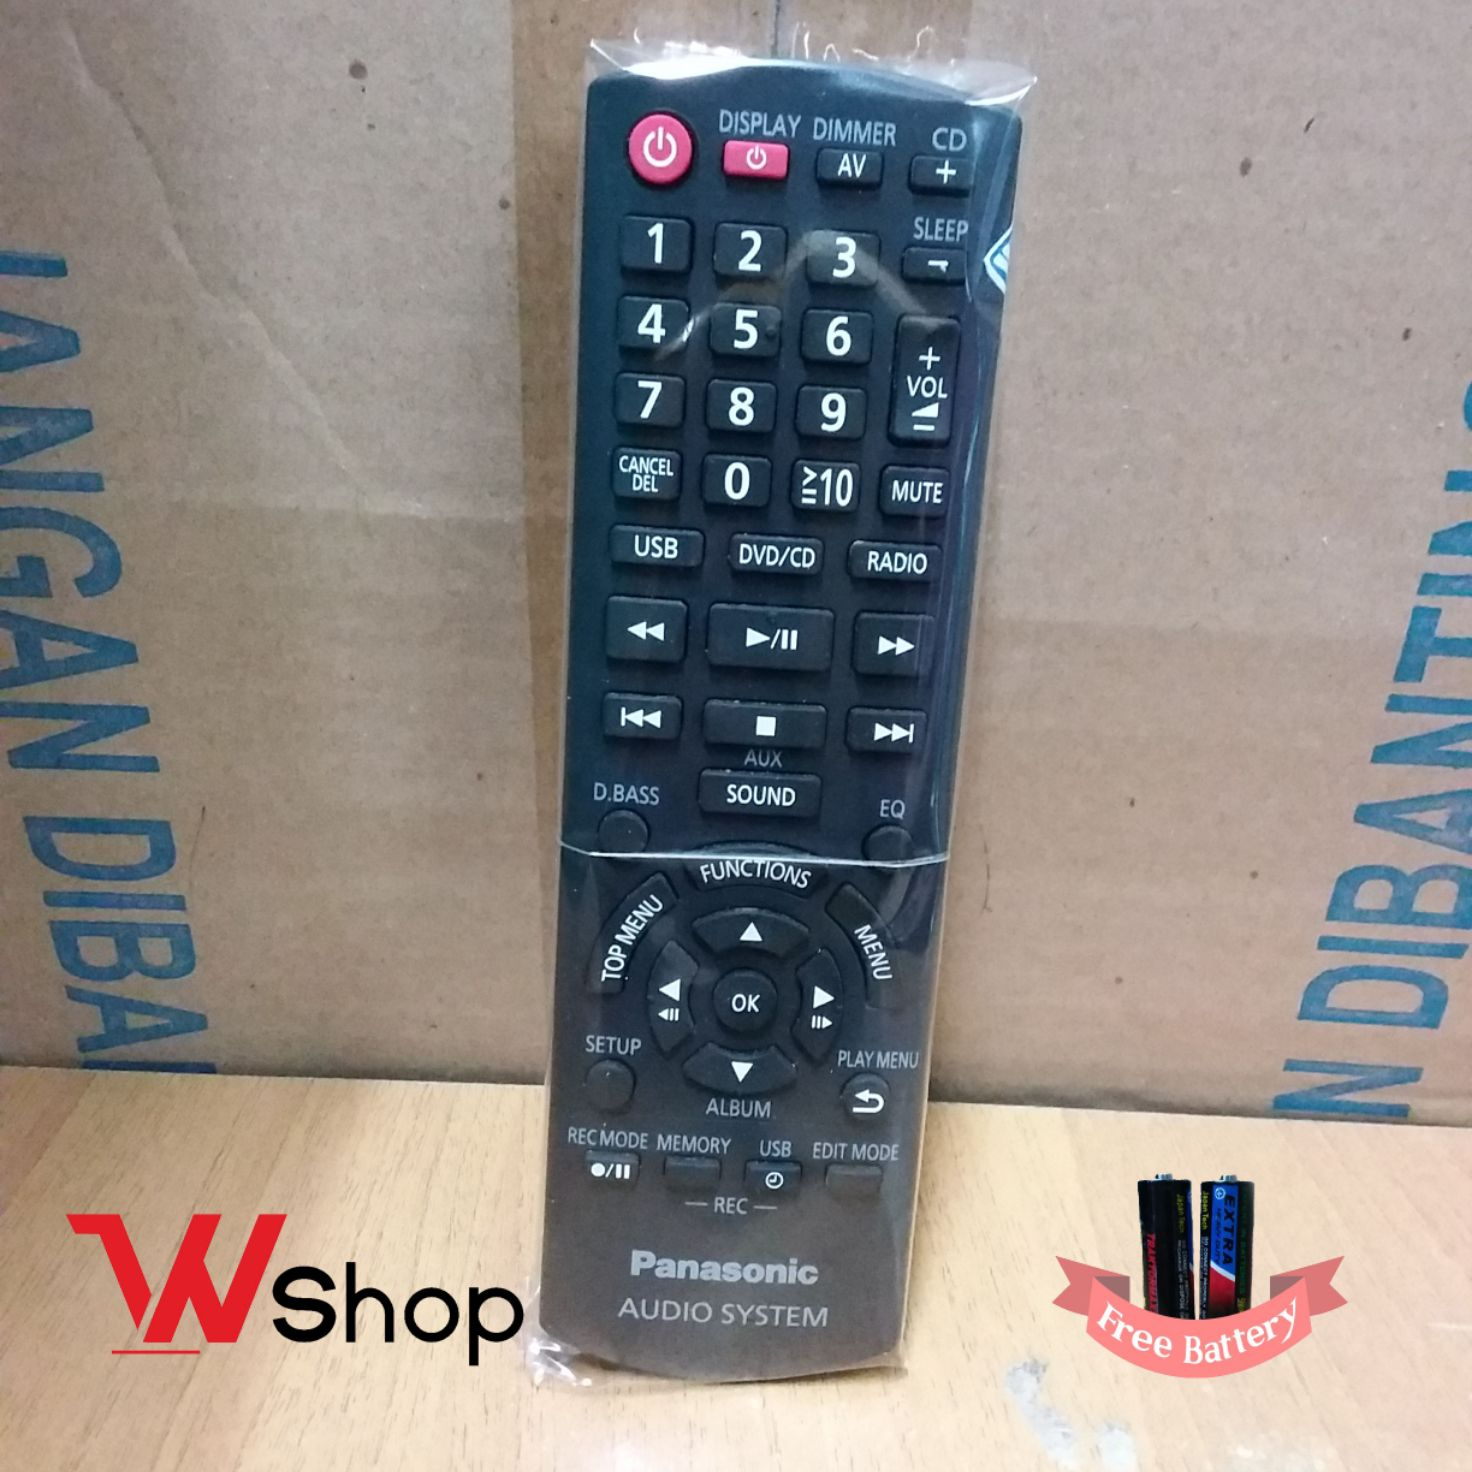 REMOTE/REMOT AUDIO SYSTEM USB PANASONIC ORIGINAL